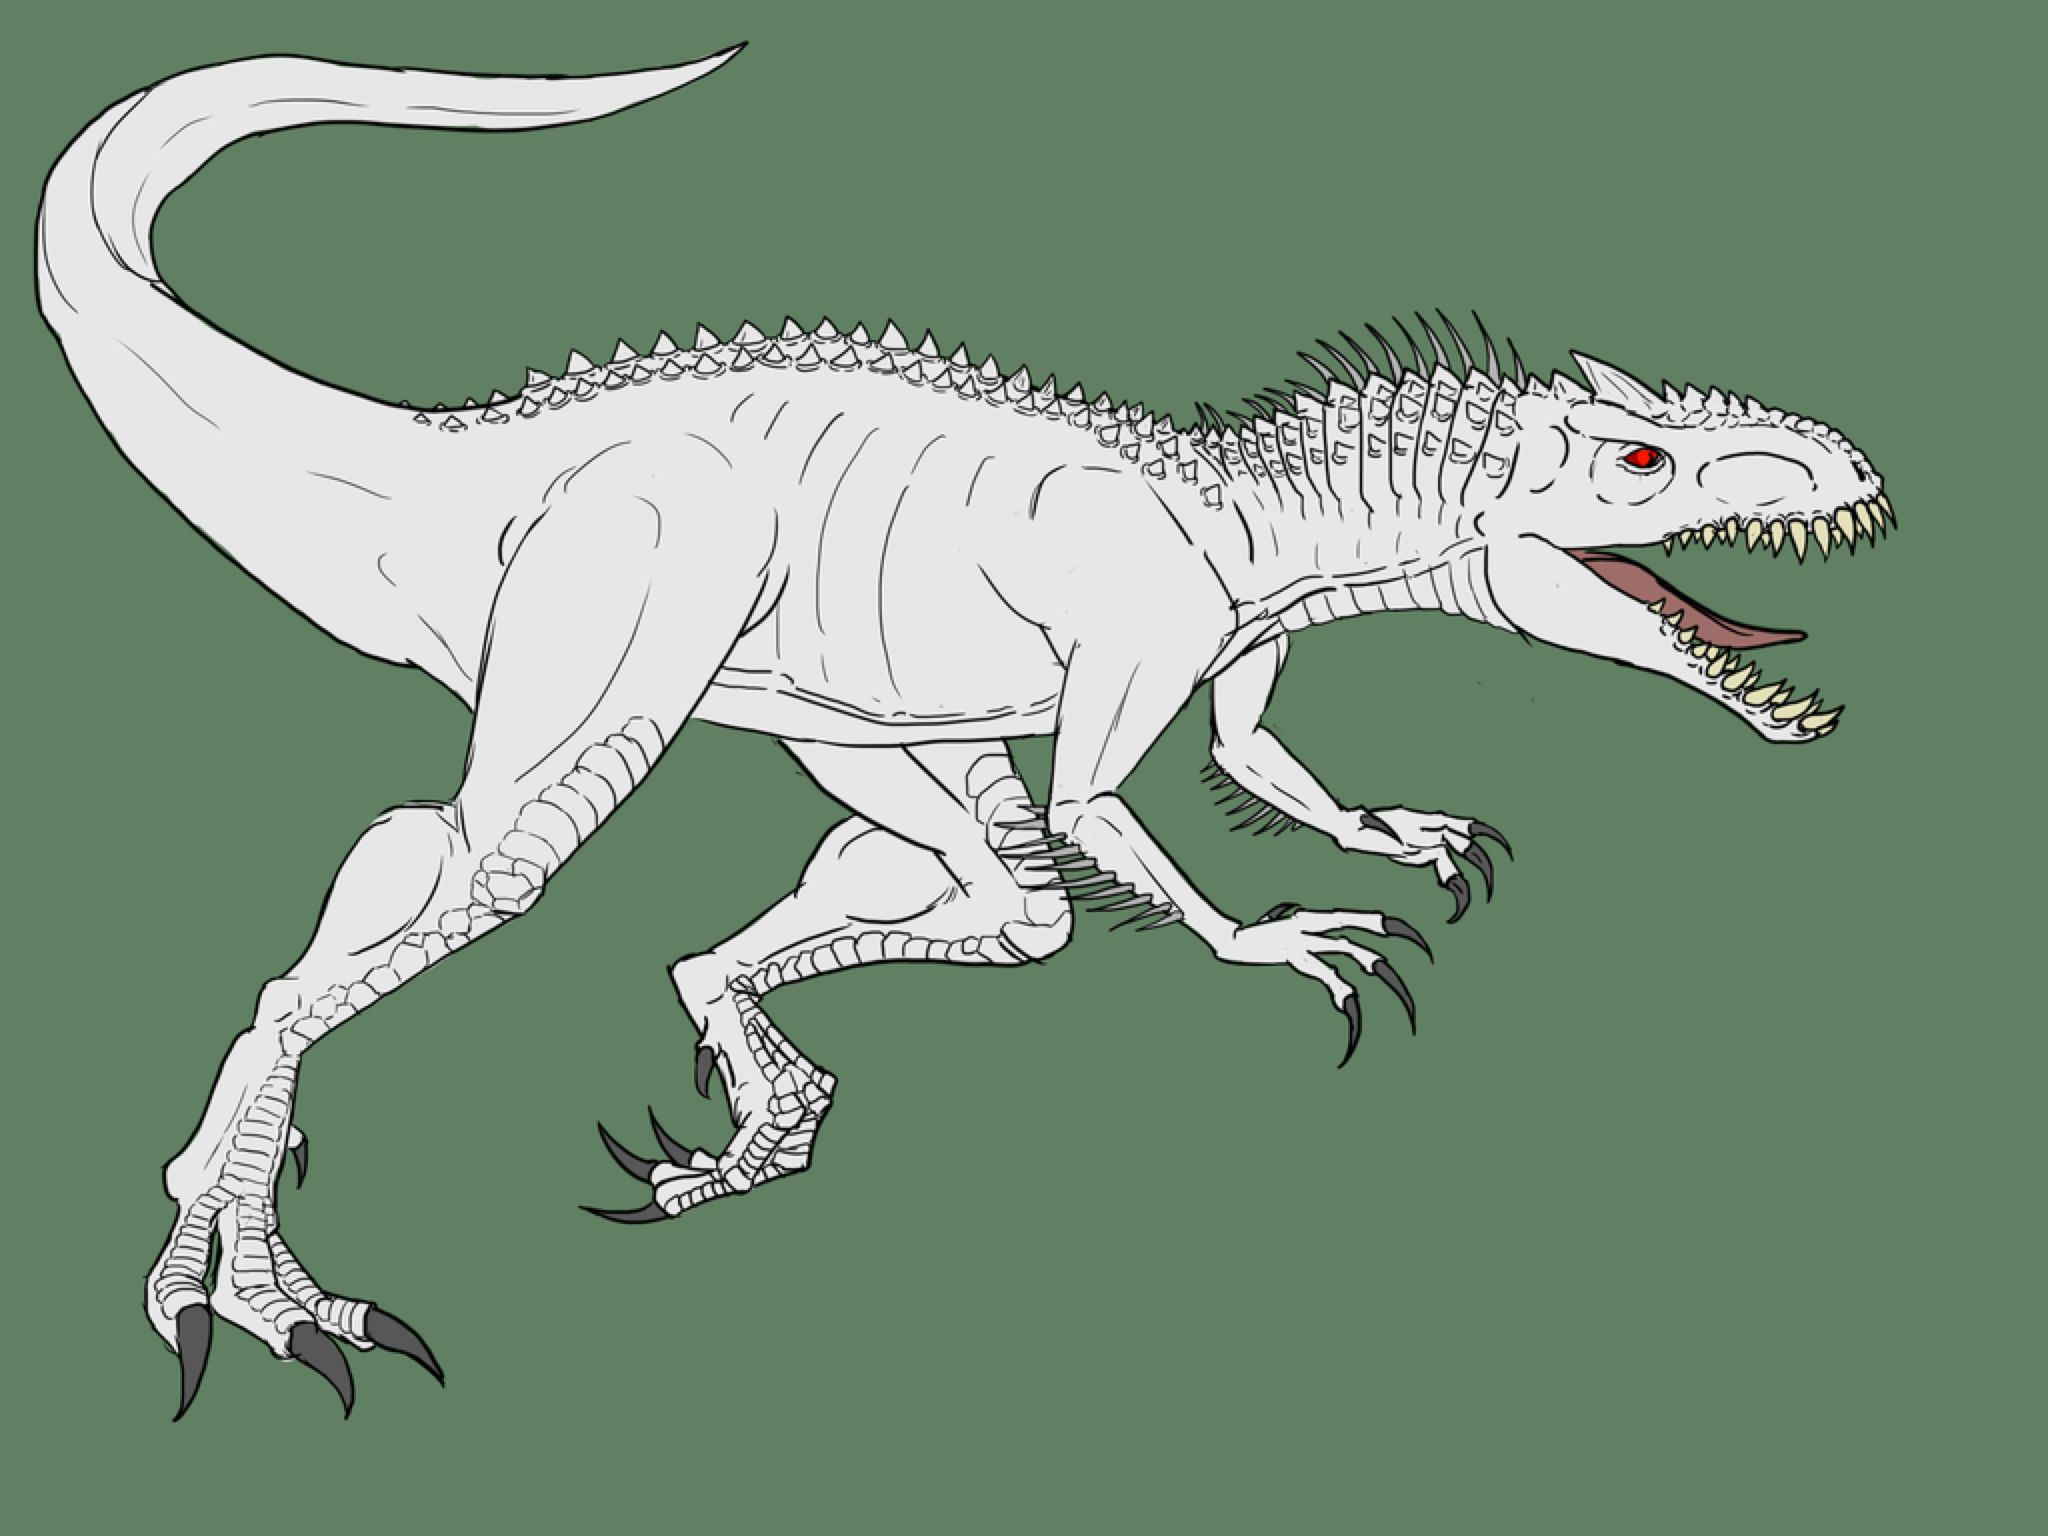 Indominus Rex (Base Colored) by Enneigard on DeviantArt